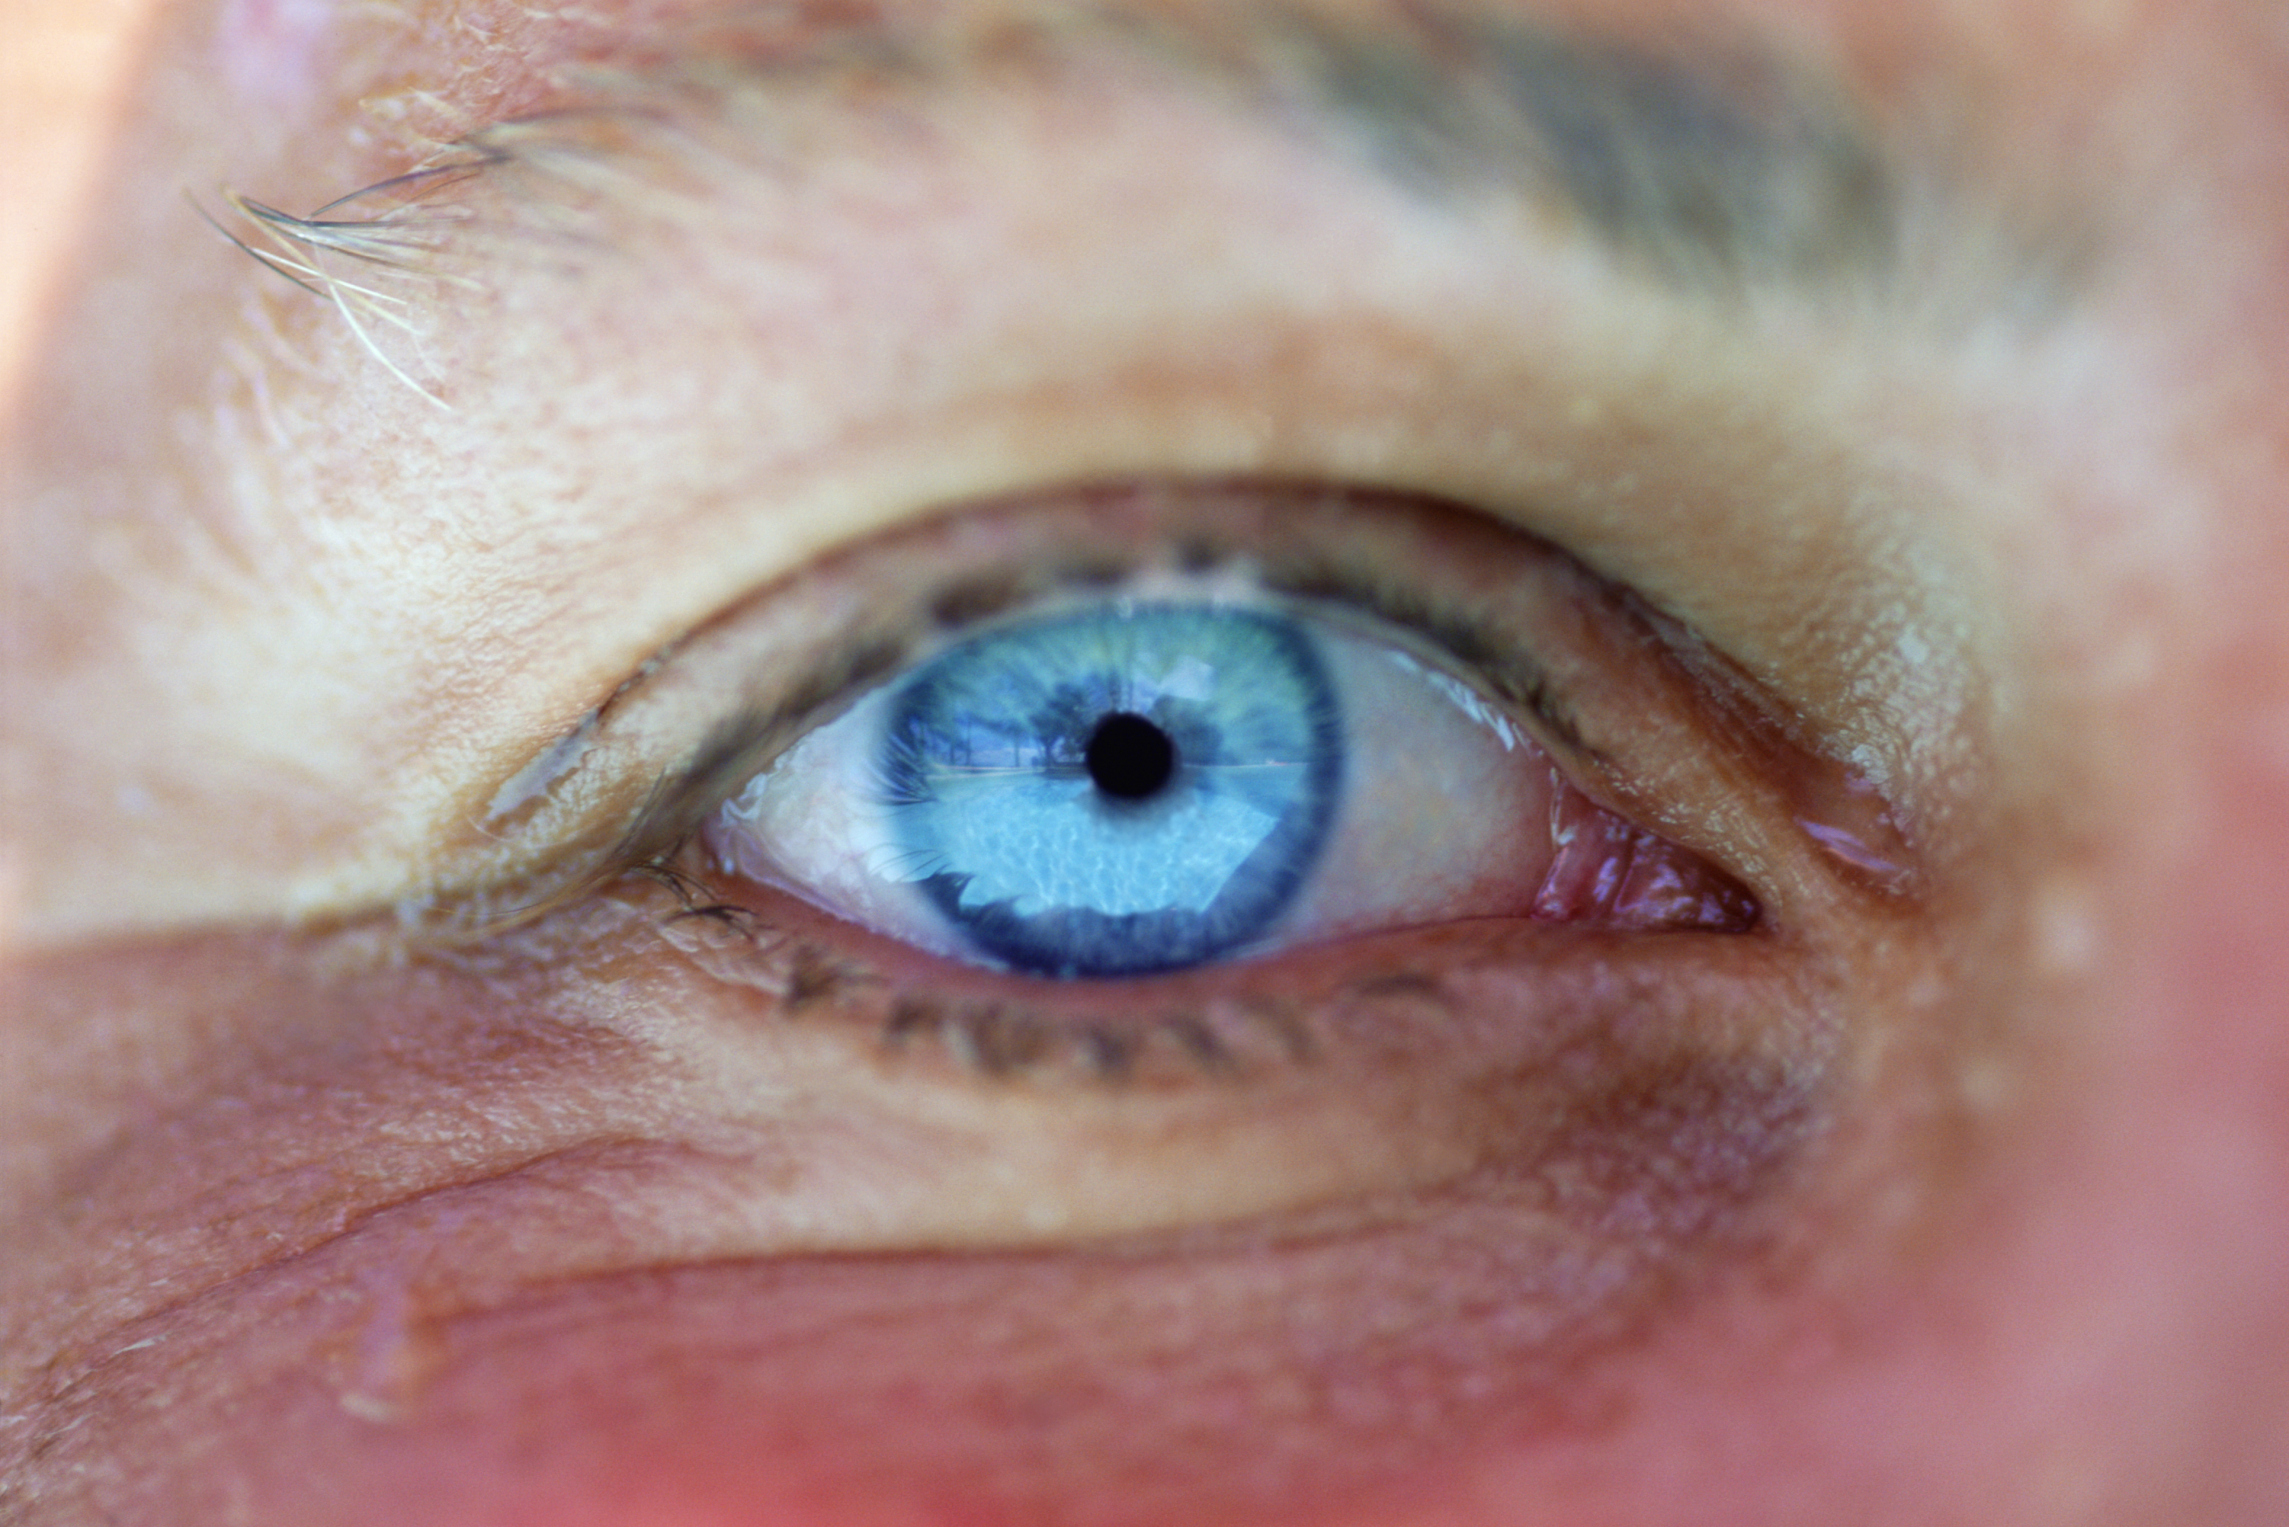 Hypercalcemia is associated with changes in the cornea rather than posterior vitreous detachment.